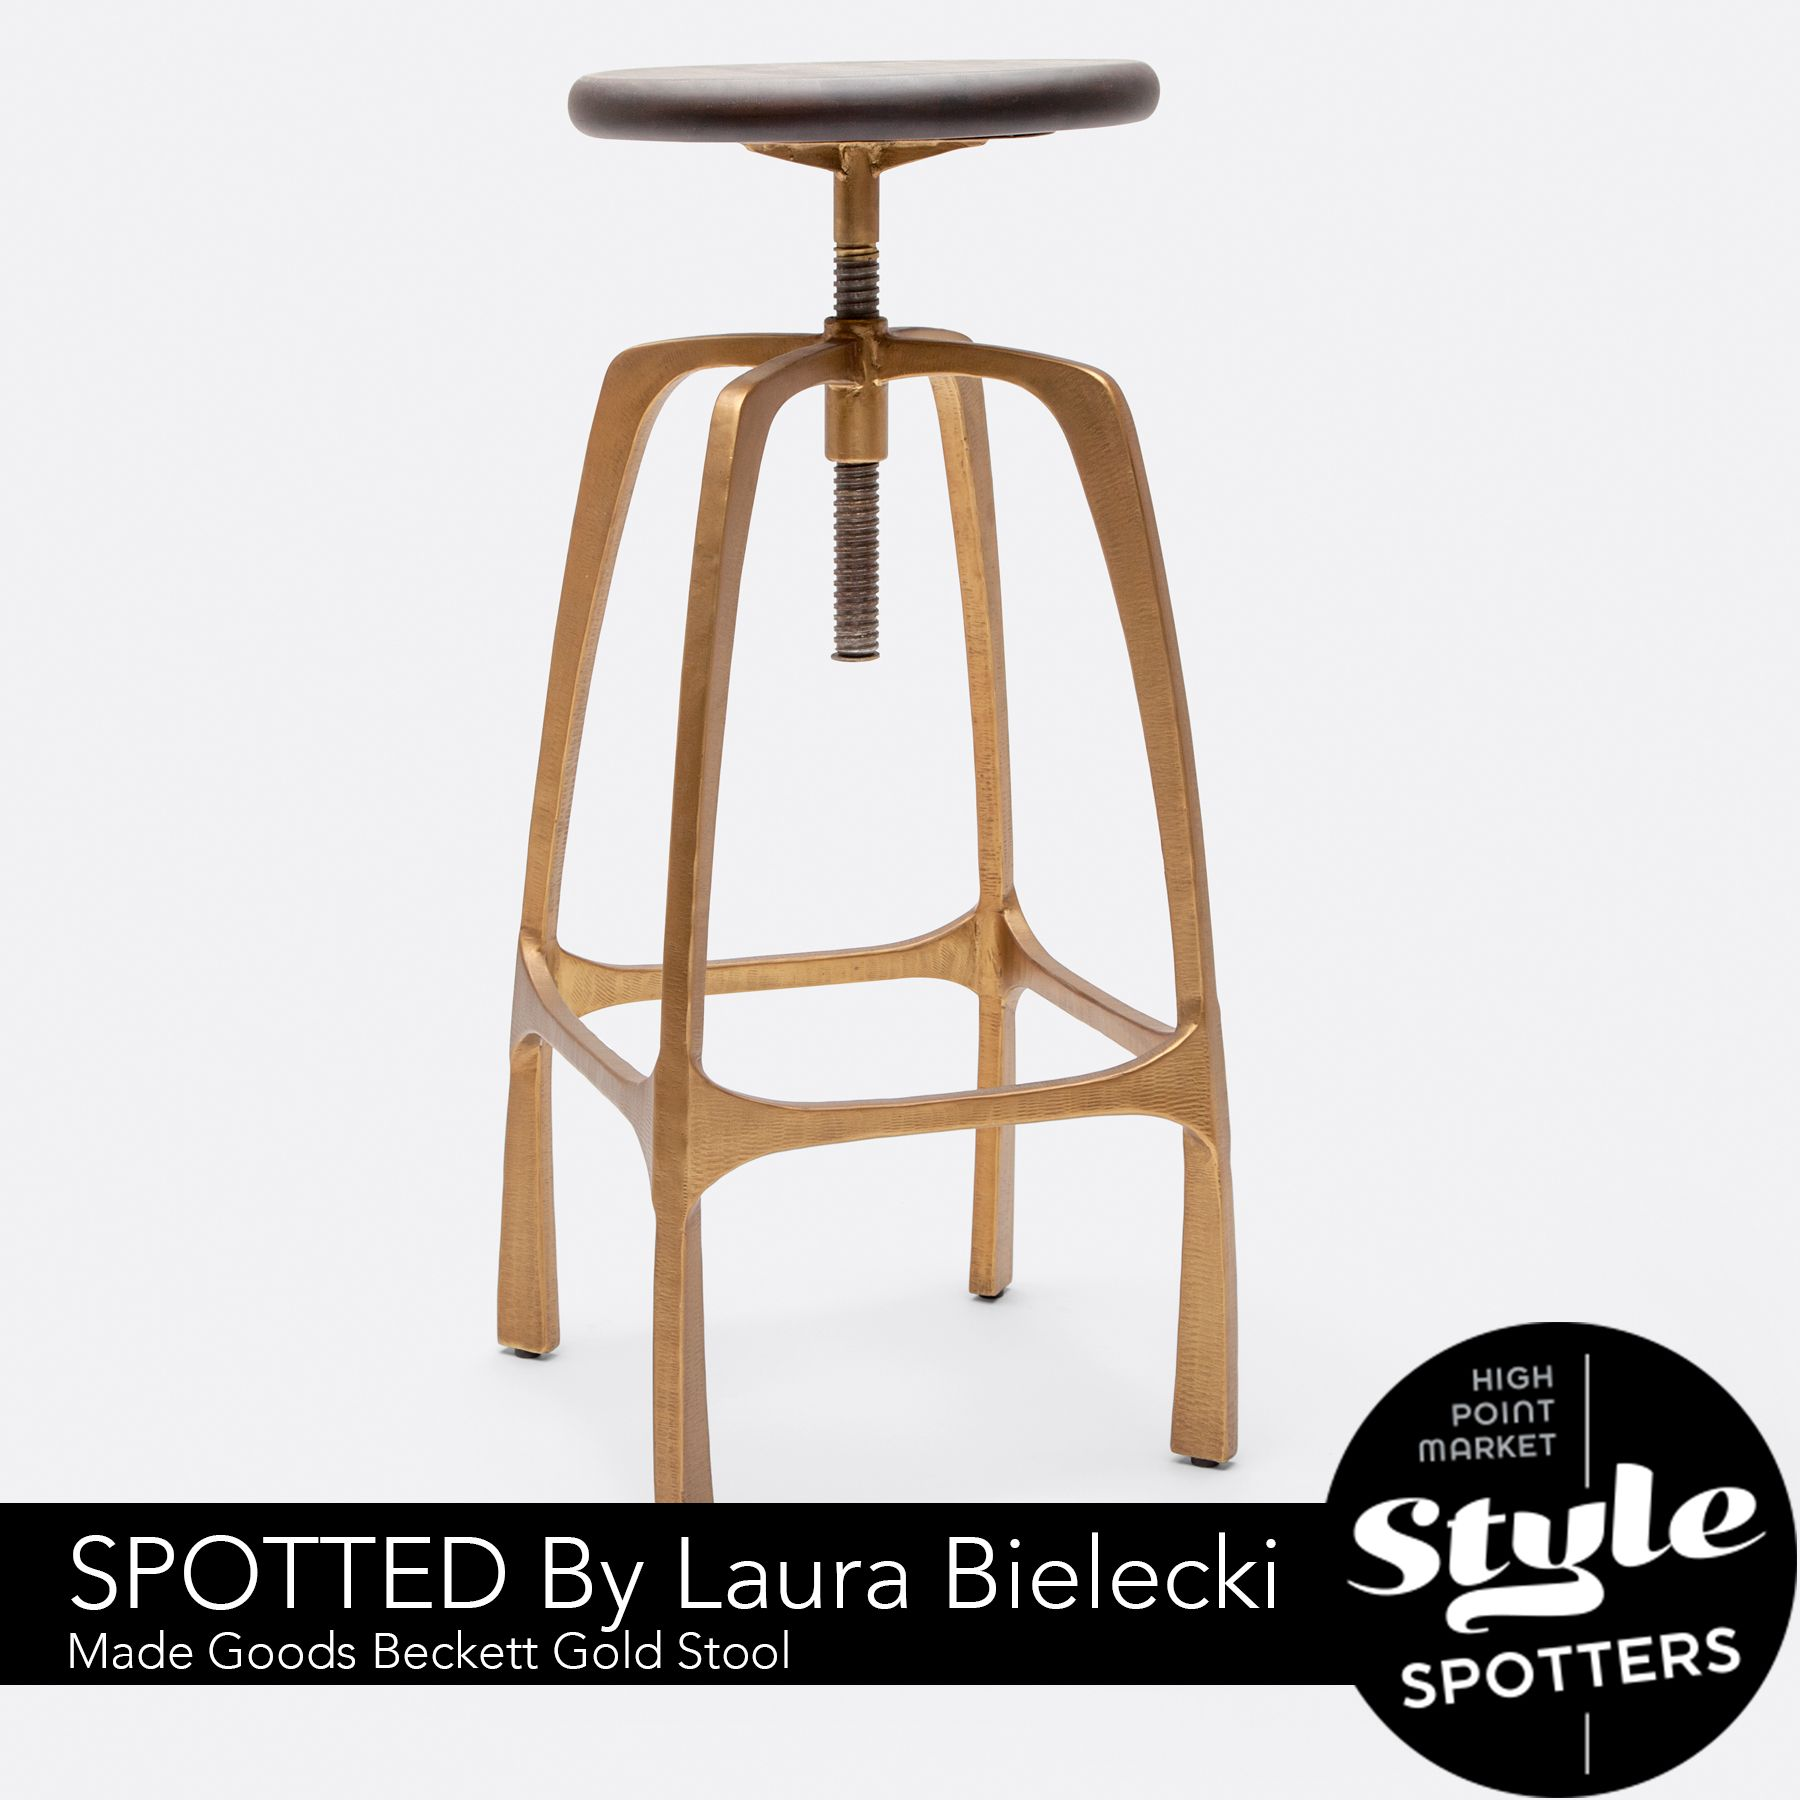 Made Goods Beckett Stool. Style Spotted By Laura Bielecki